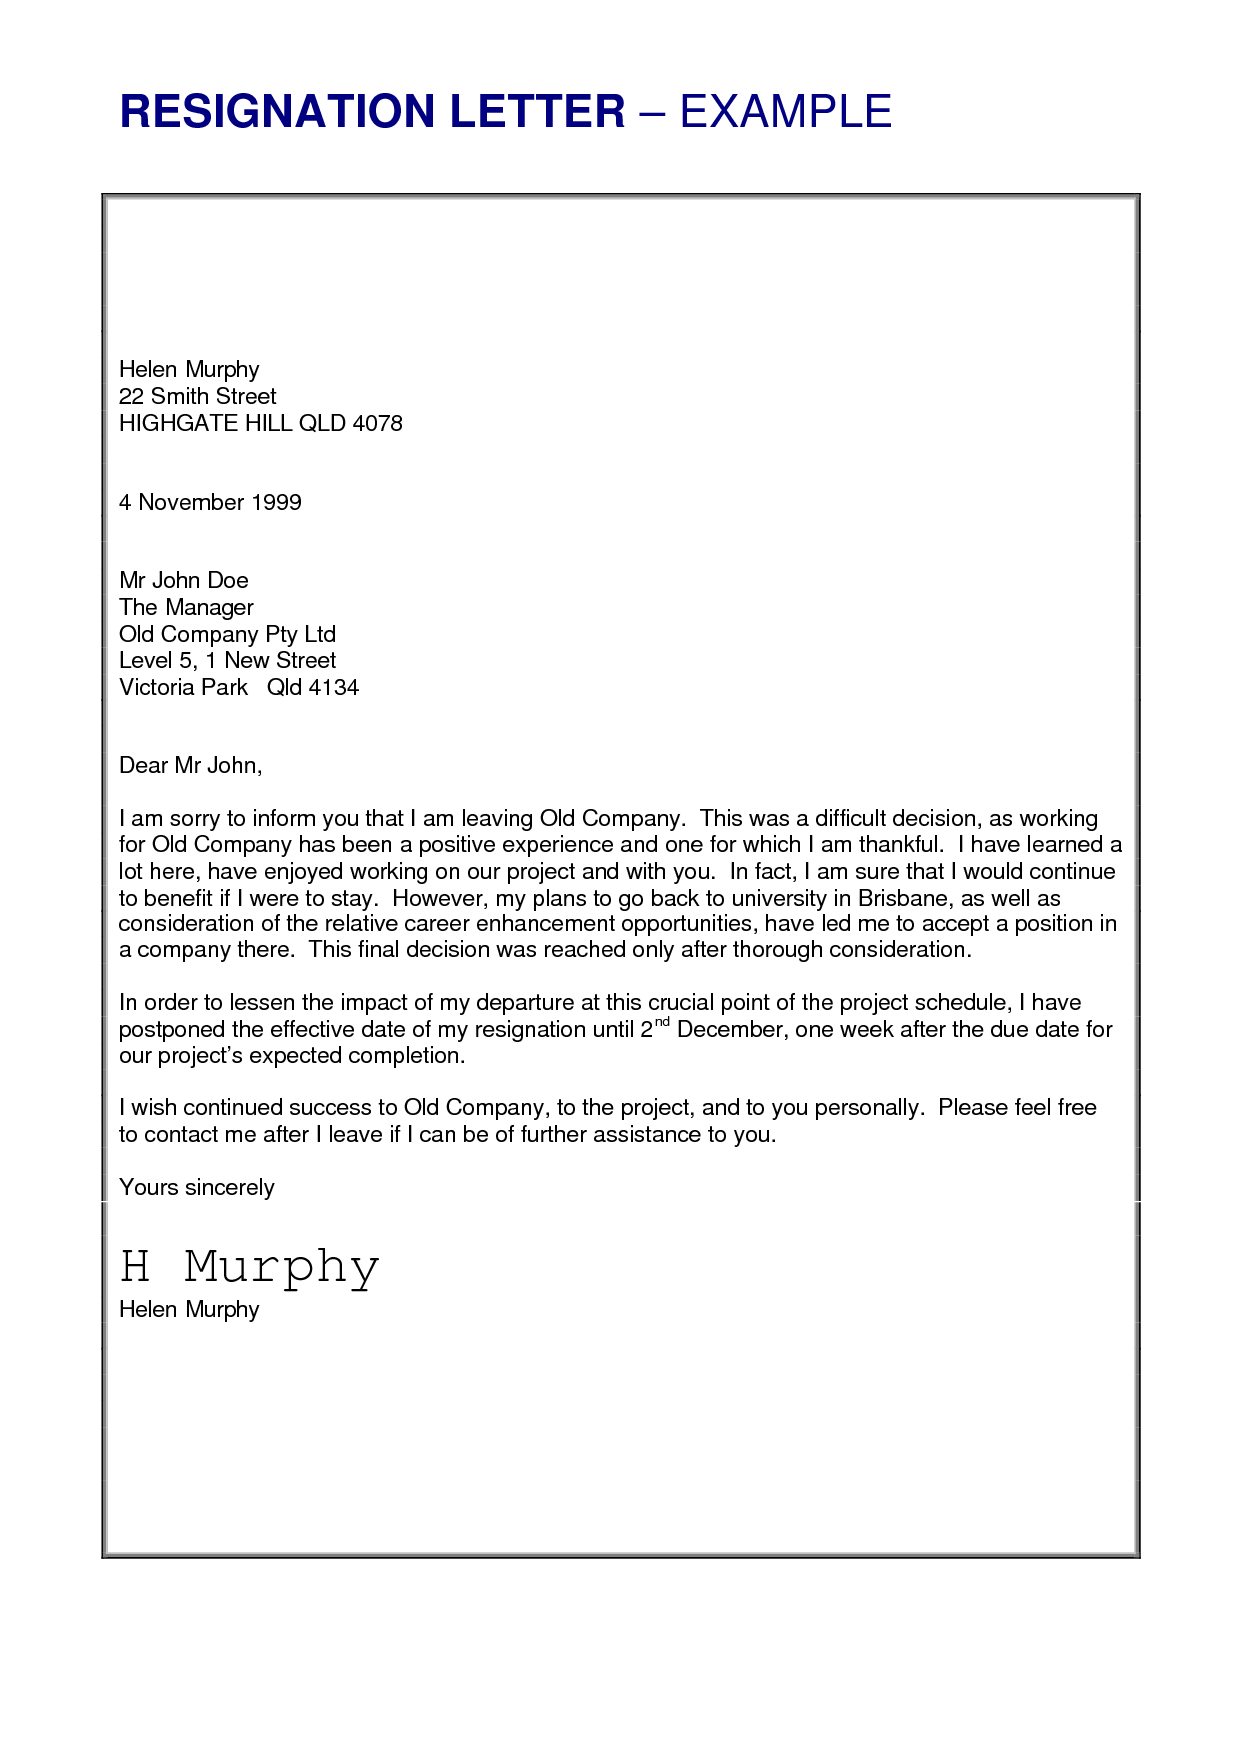 Charming Job Resignation Letter Sample   Loganun Blog